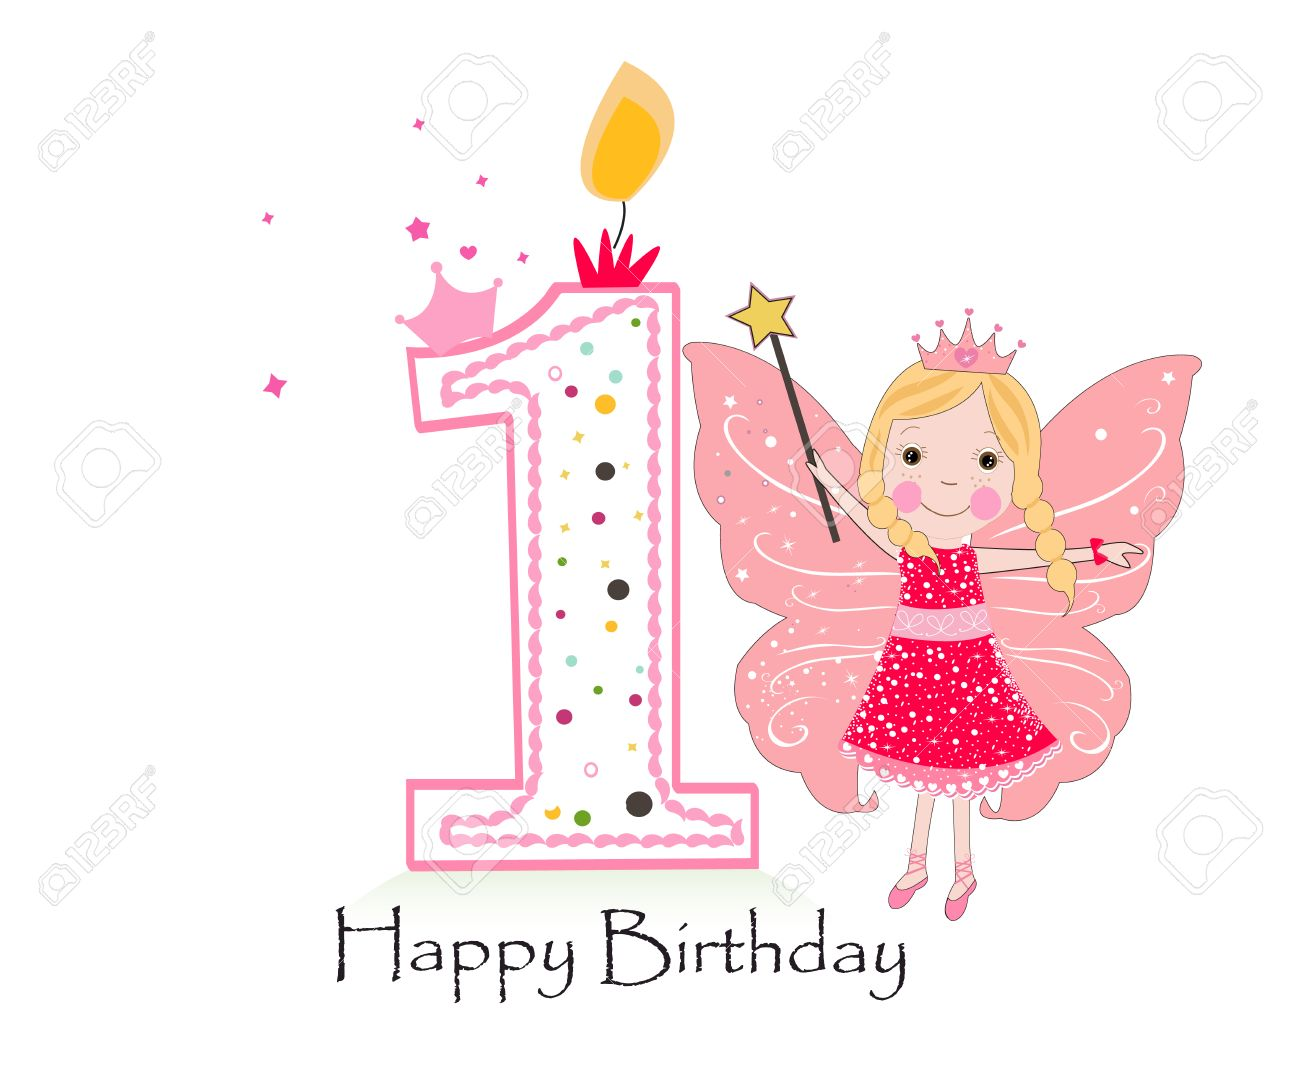 happy birthday baby girl ; 71929986-happy-first-birthday-candle-baby-girl-greeting-card-with-fairy-tale-vector-background